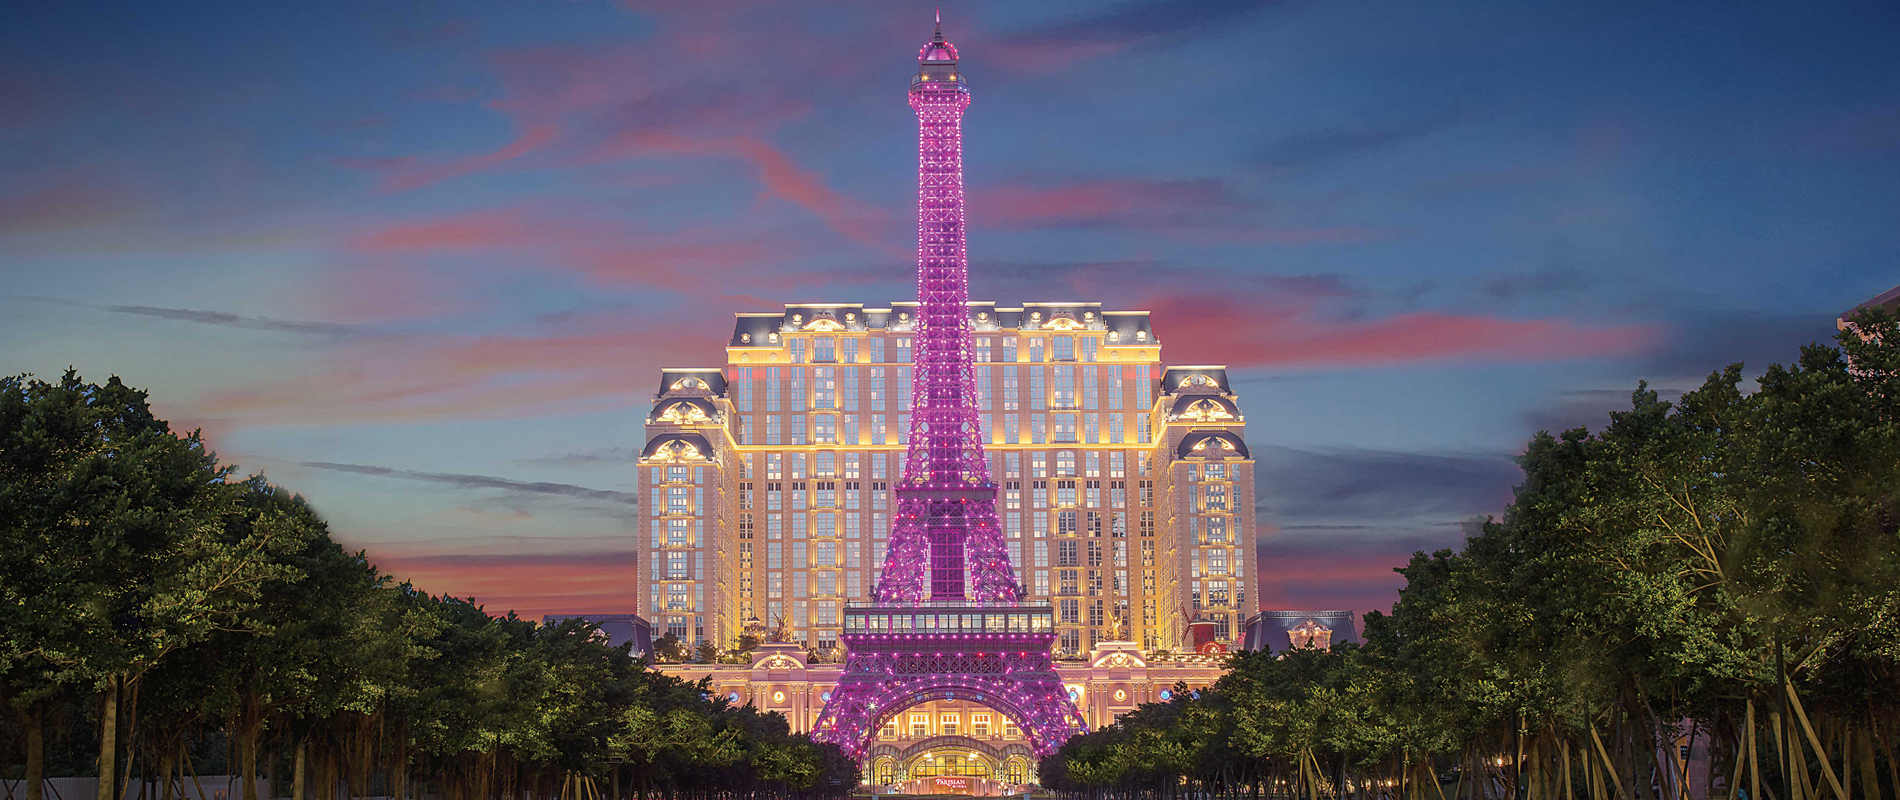 Eiffel Tower in Parisian Macao